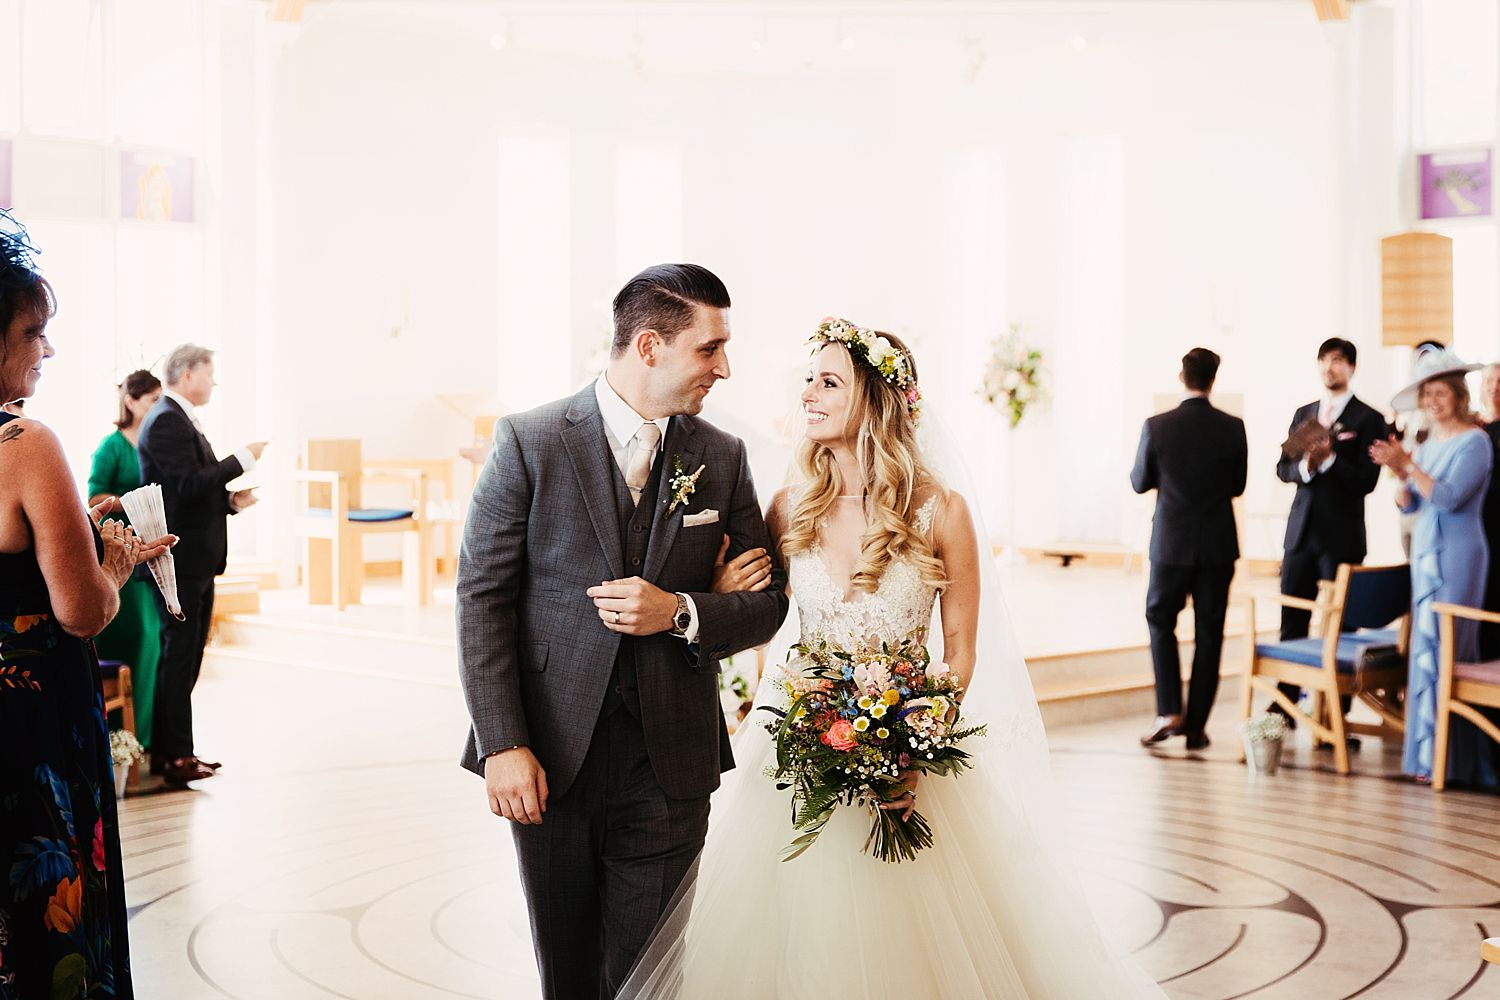 Bride and groom walk down the aisle after their Cheshire wedding, flowers by Green Earth Flowers